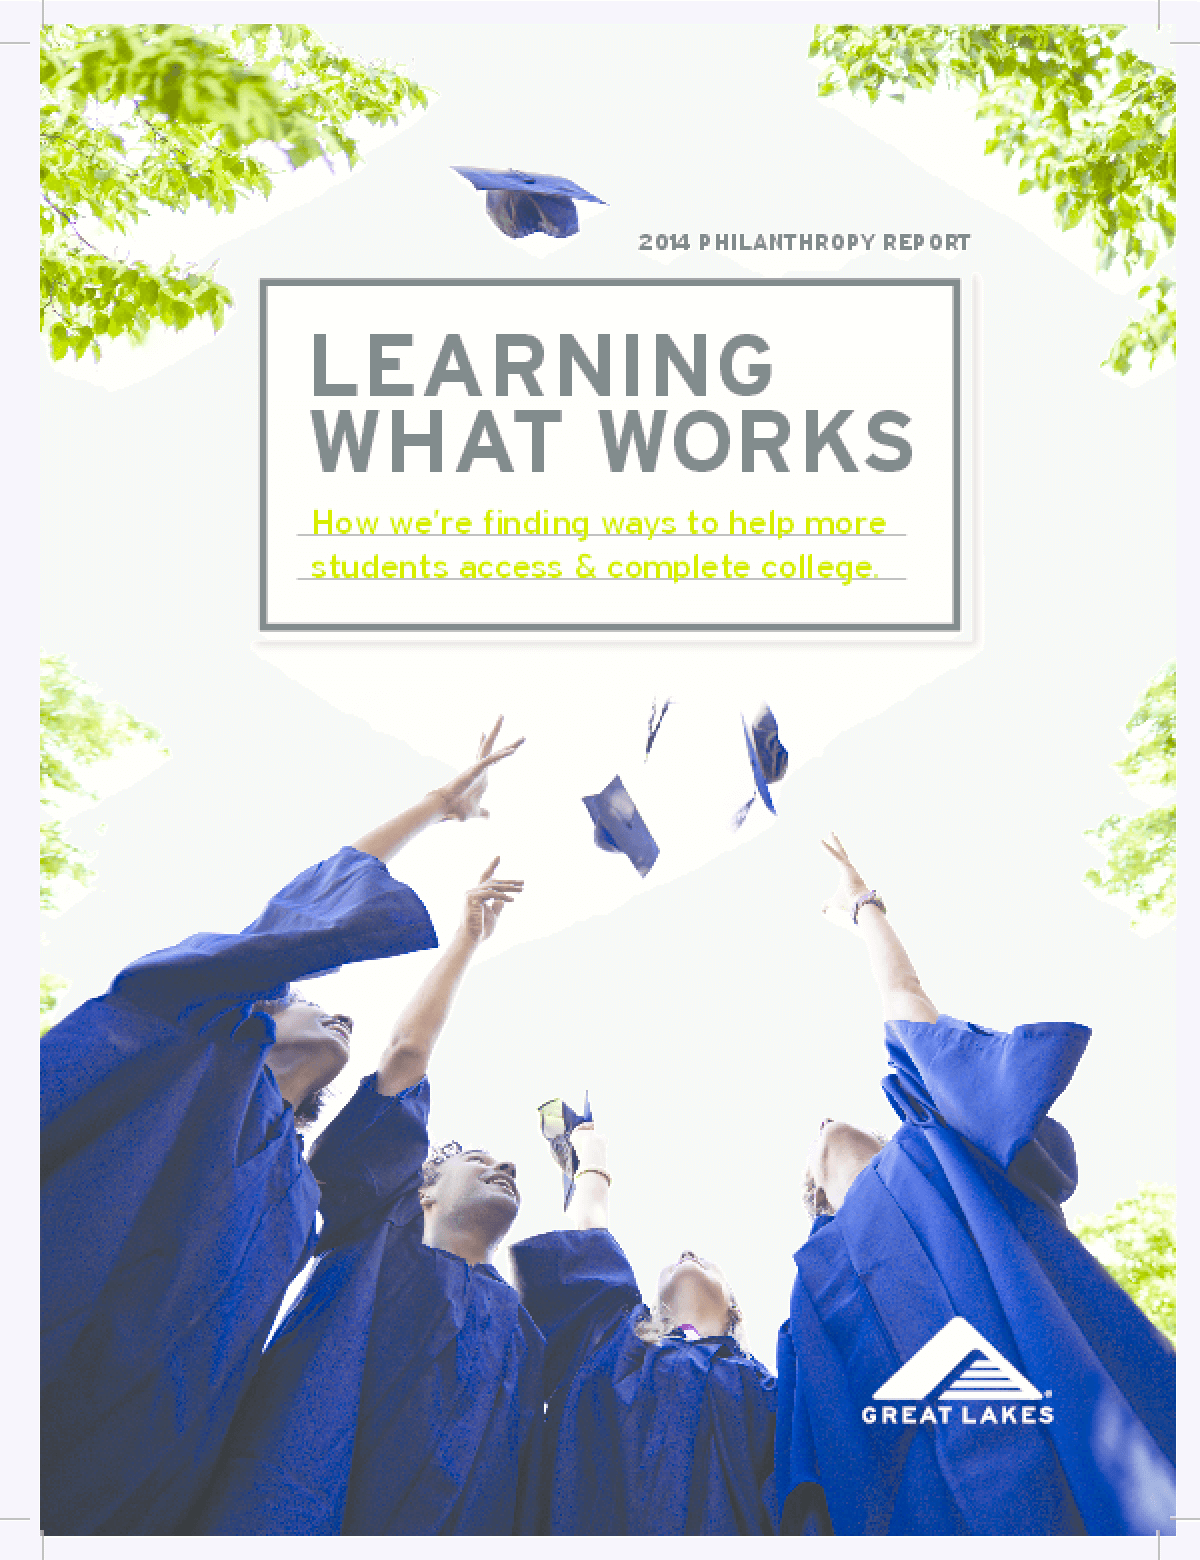 Learning What Works: Great Lakes 2014 Philanthropy Report